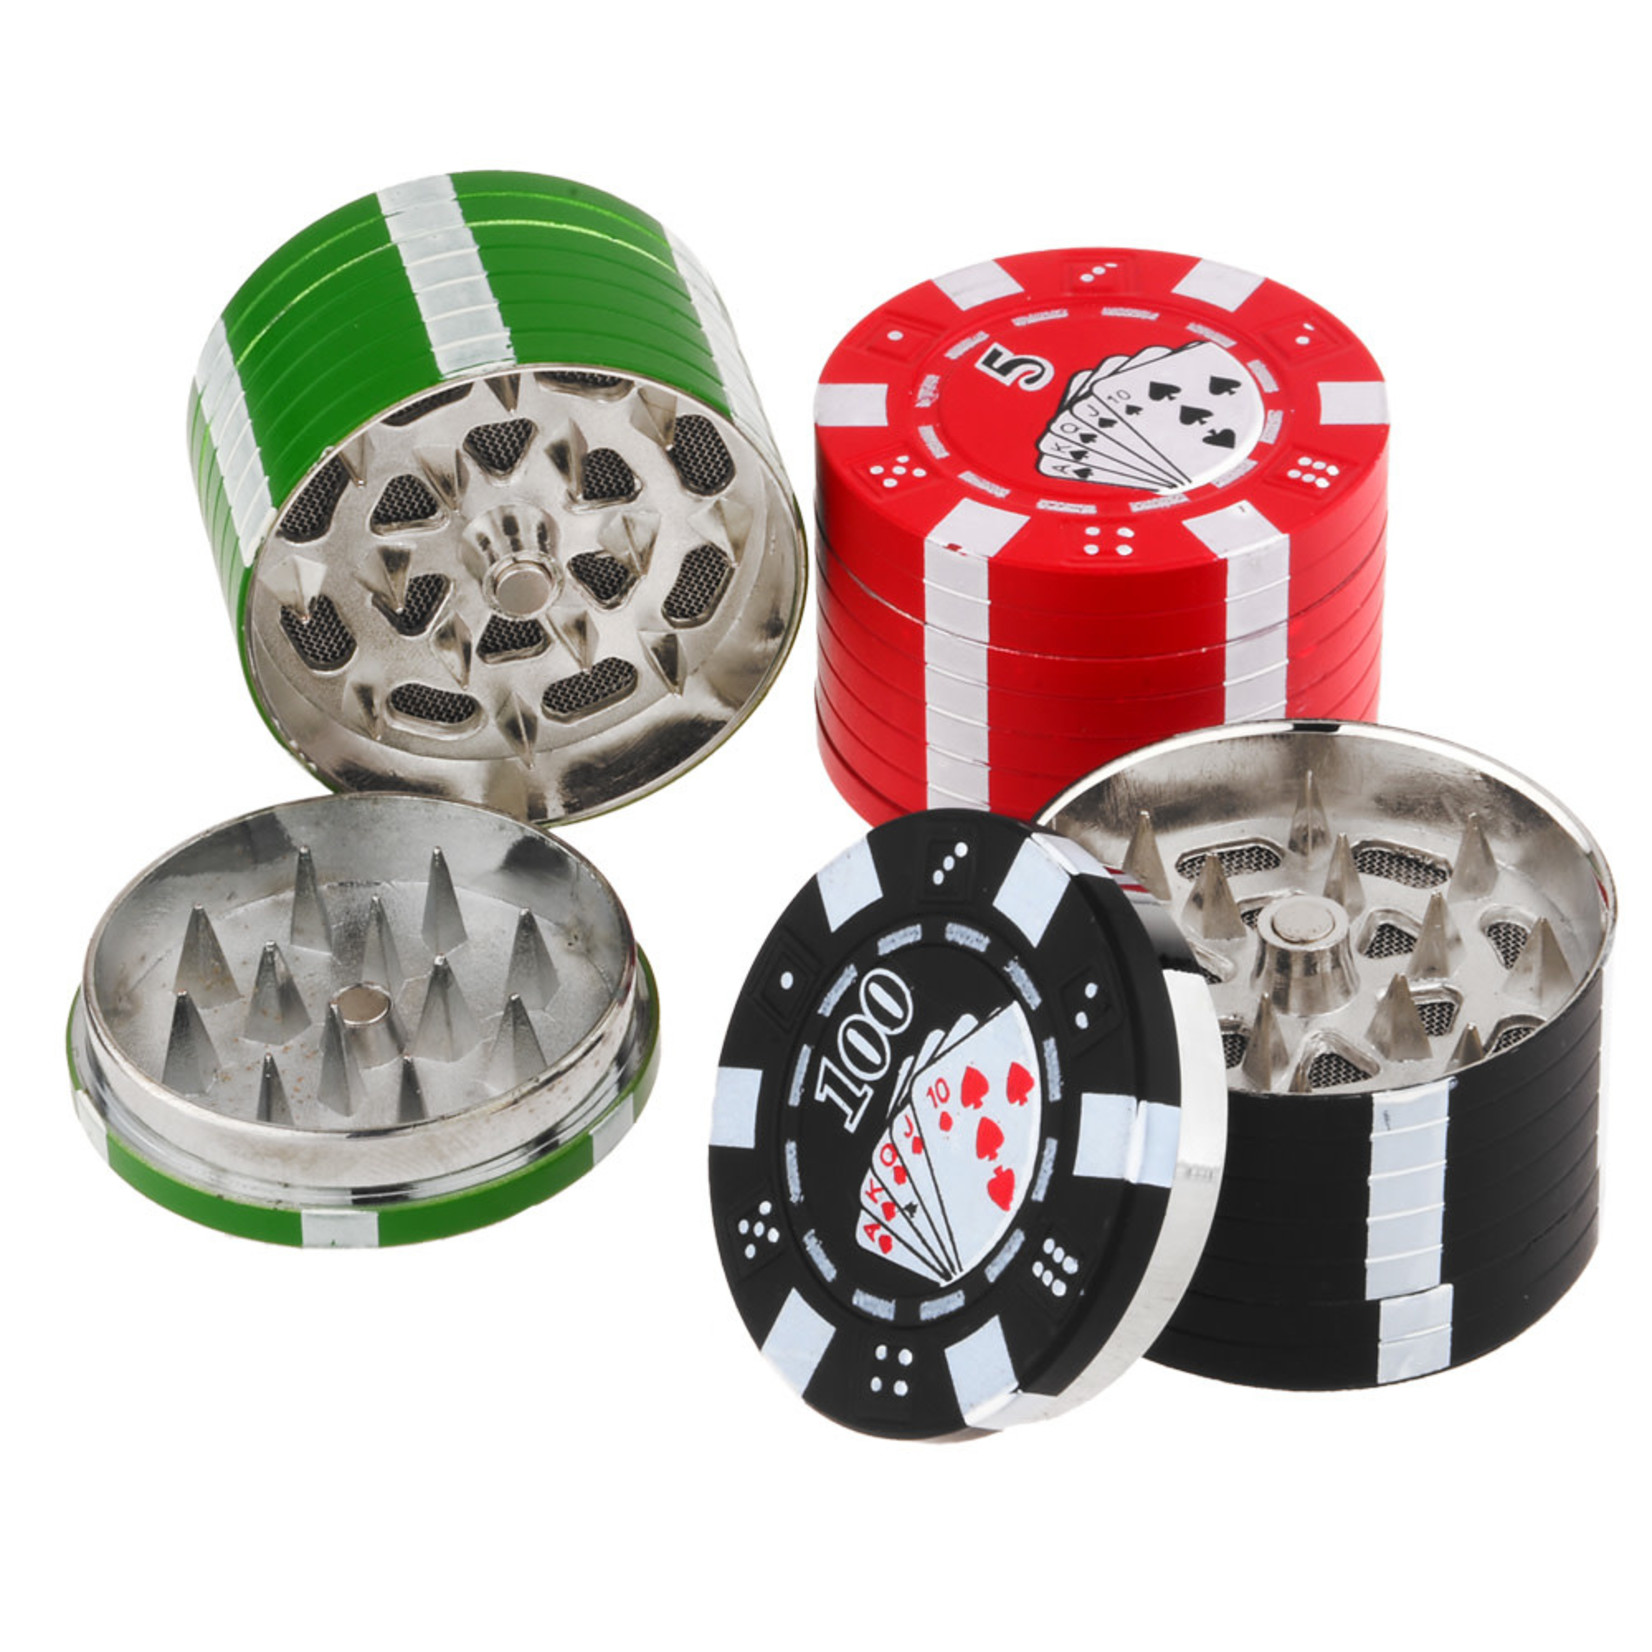 ASSORTED 3 PART POKER CHIP